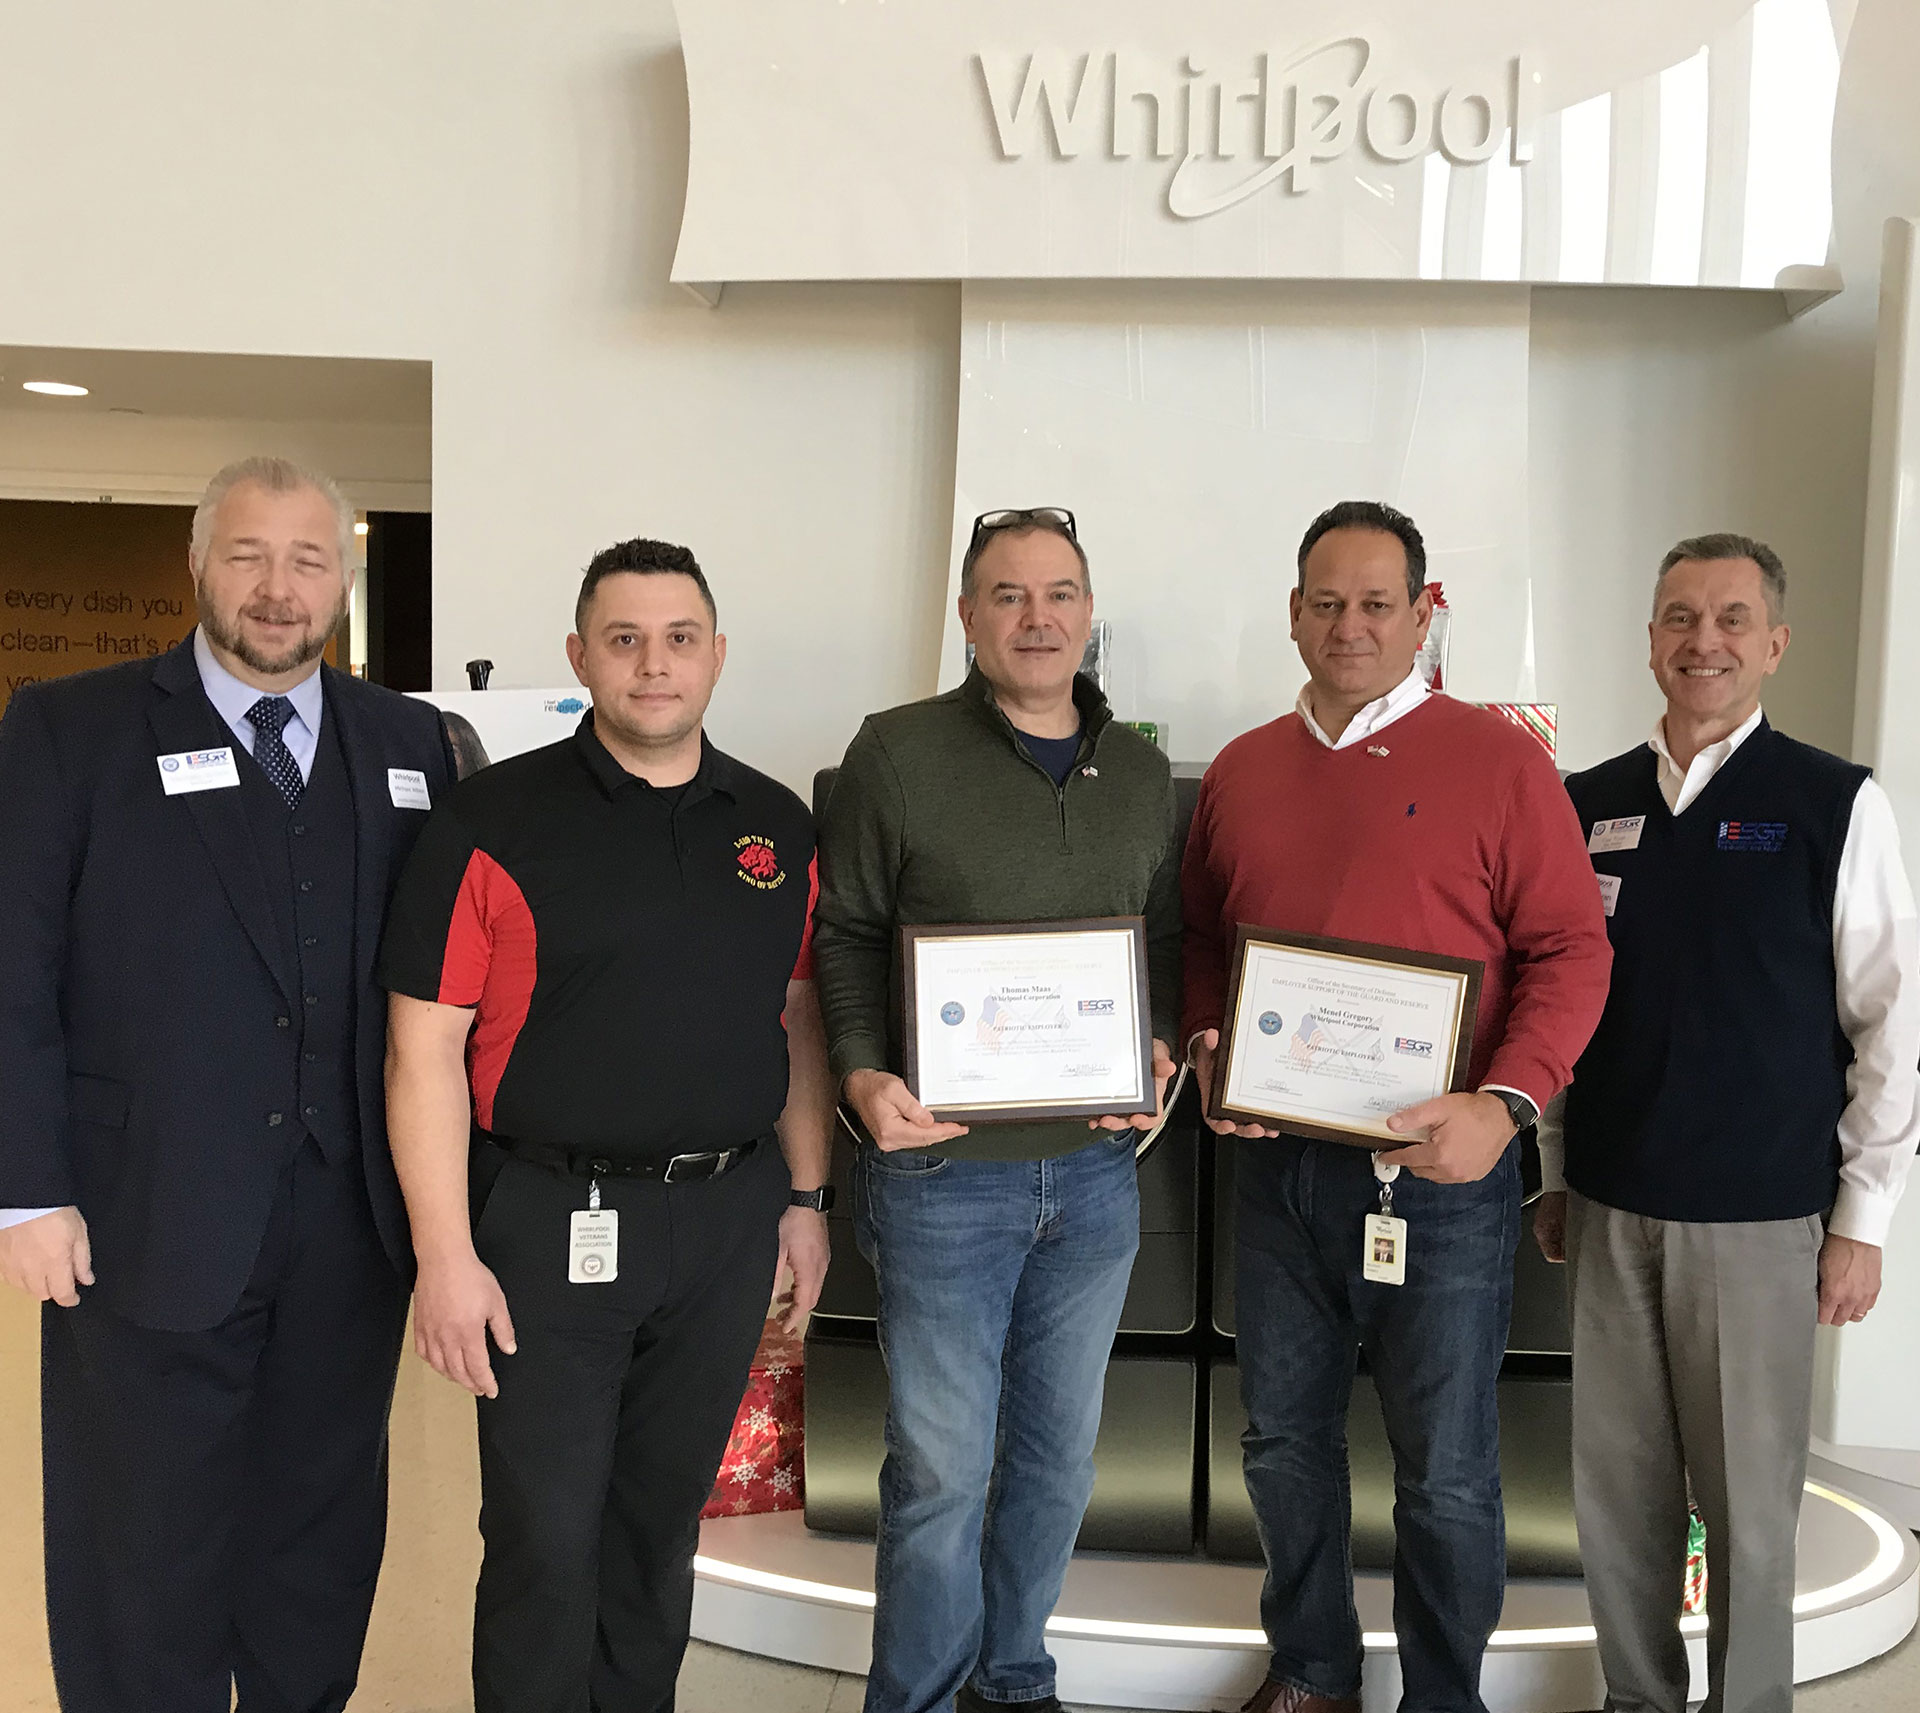 Whirlpool Managers support Veterans